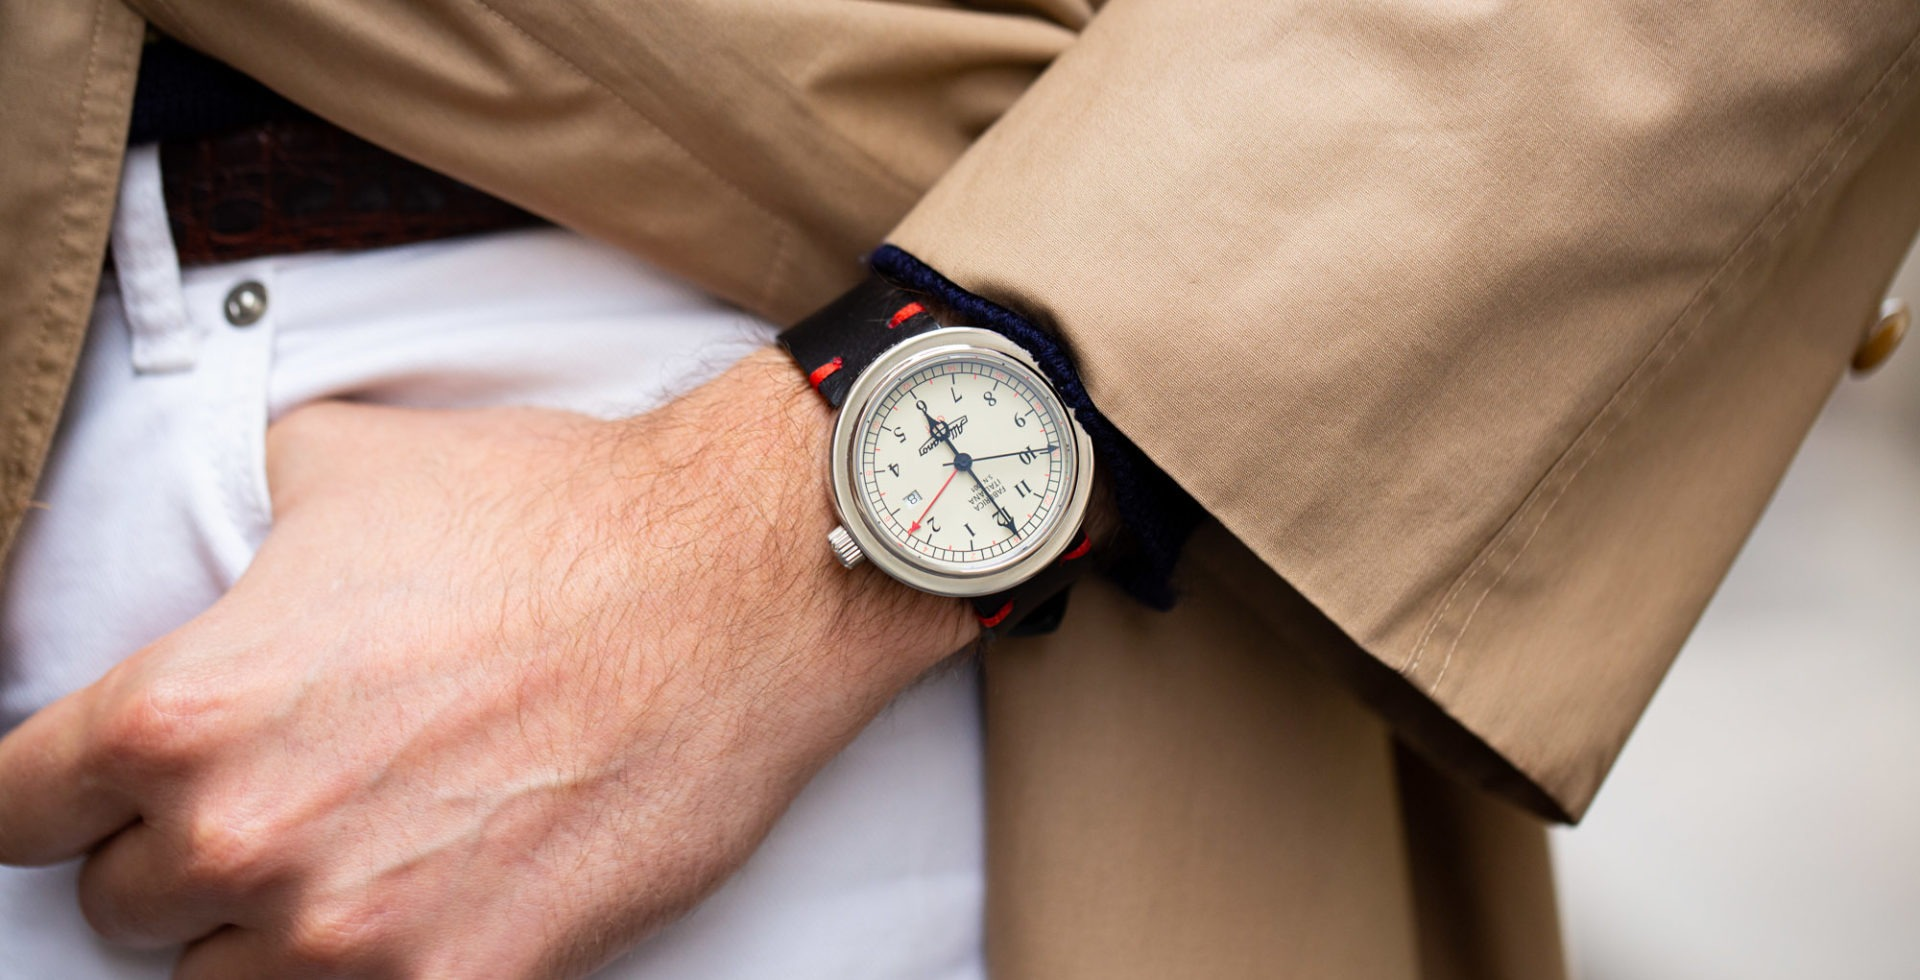 ALLEMANO TIME A 1919 SP GMT